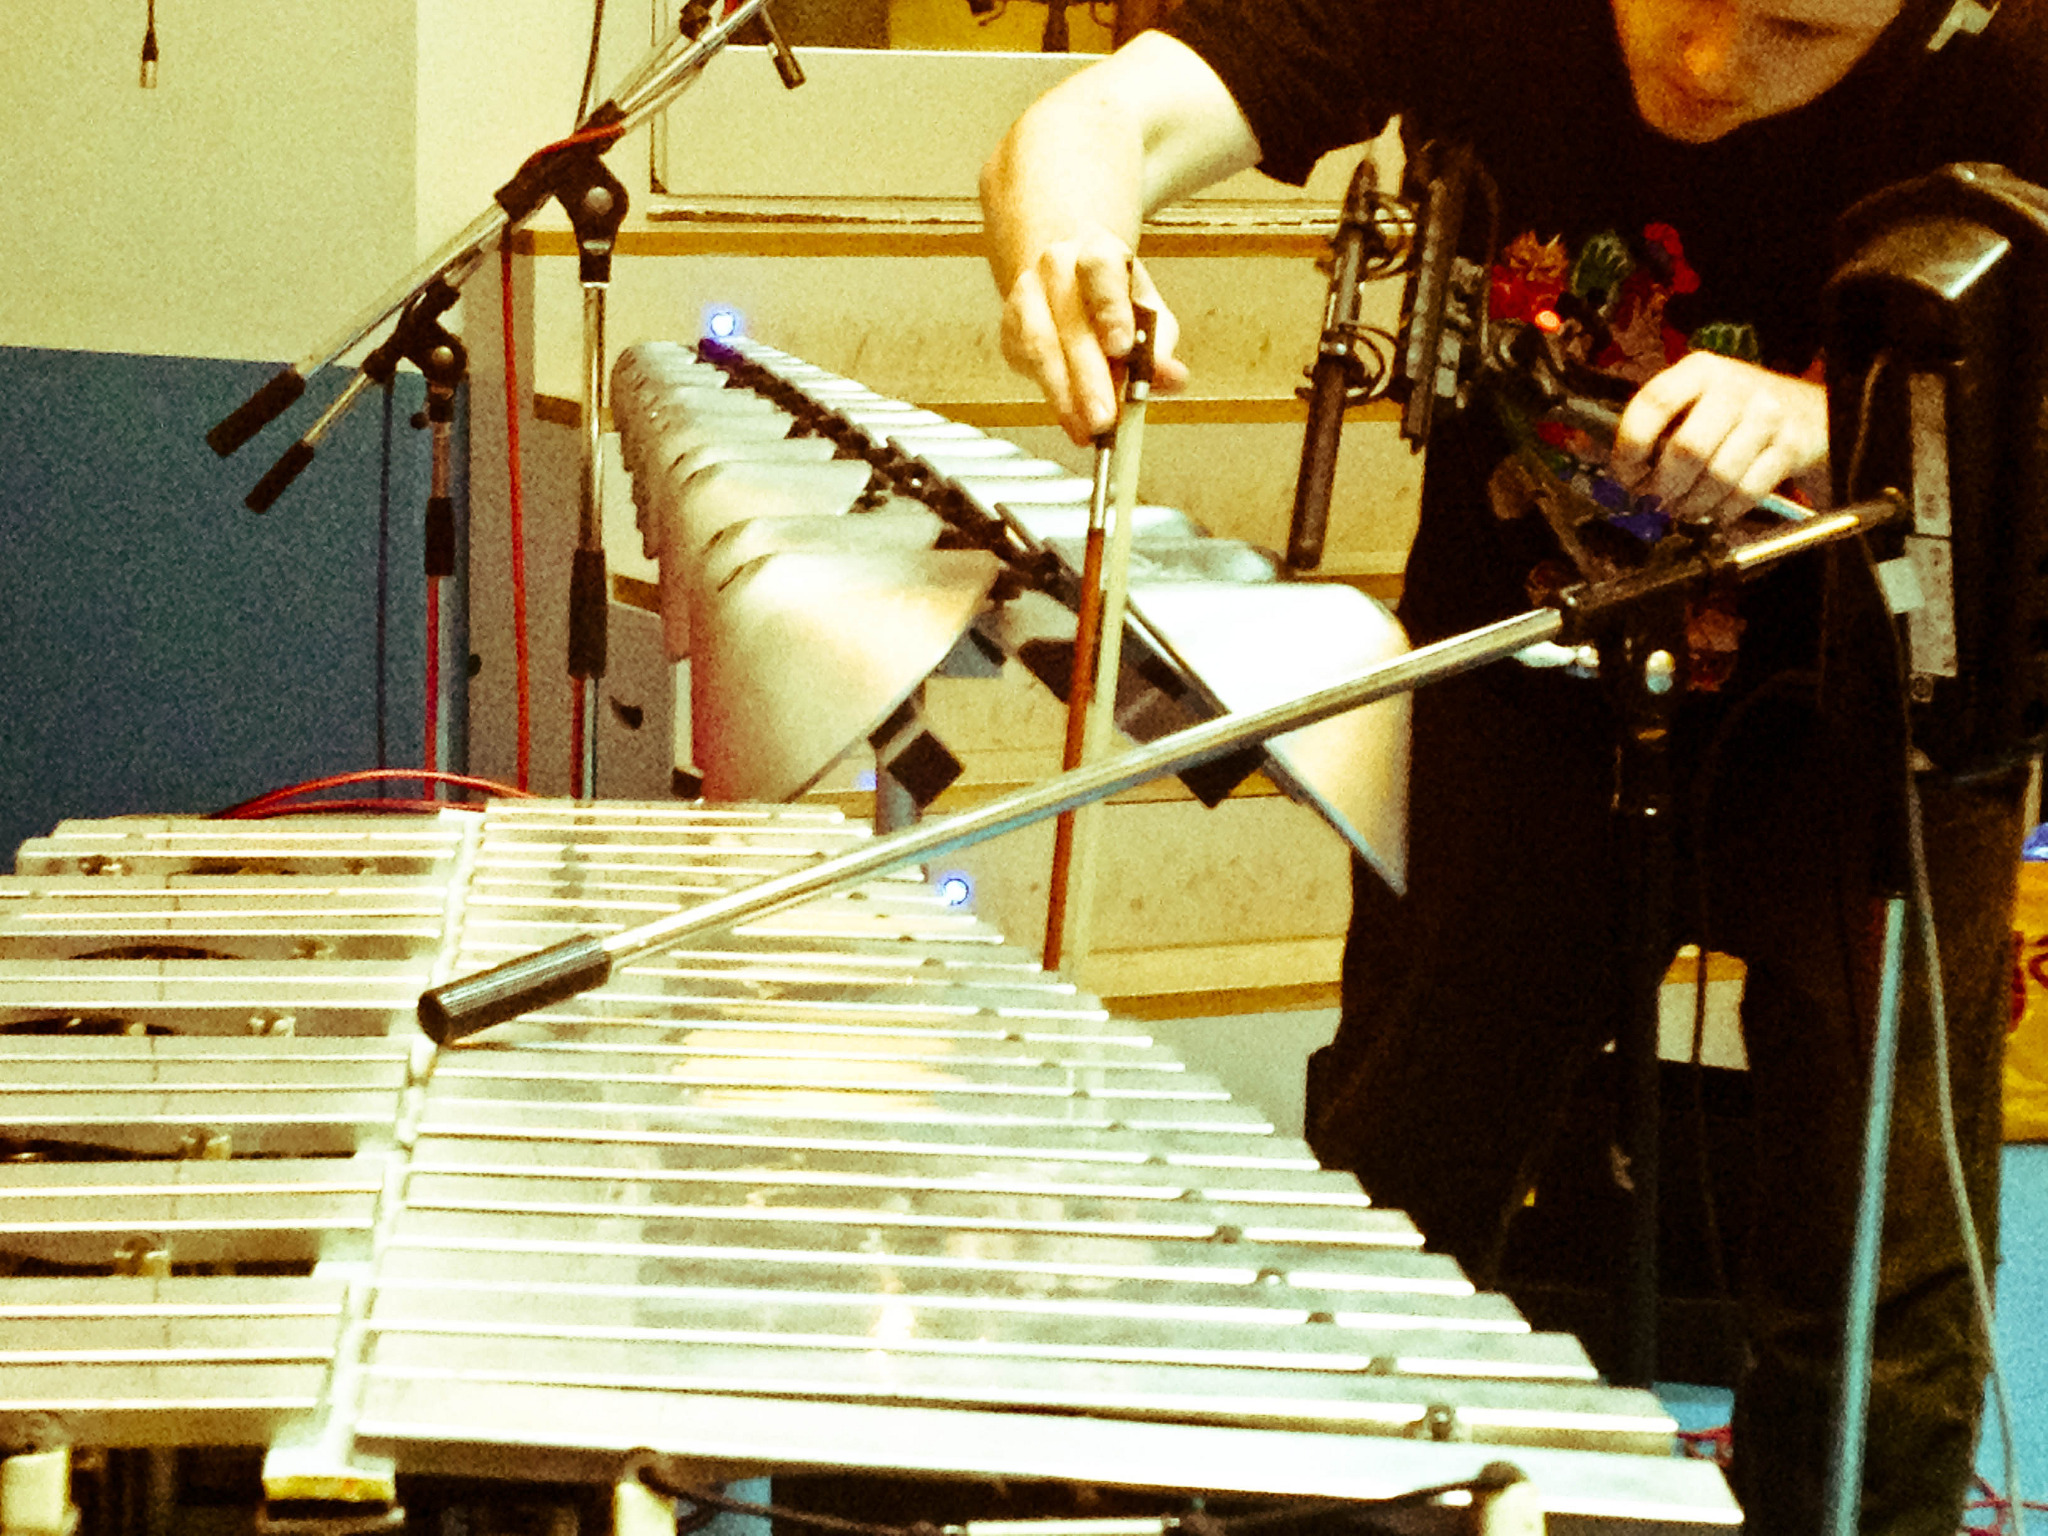 Bowing a Aluphone